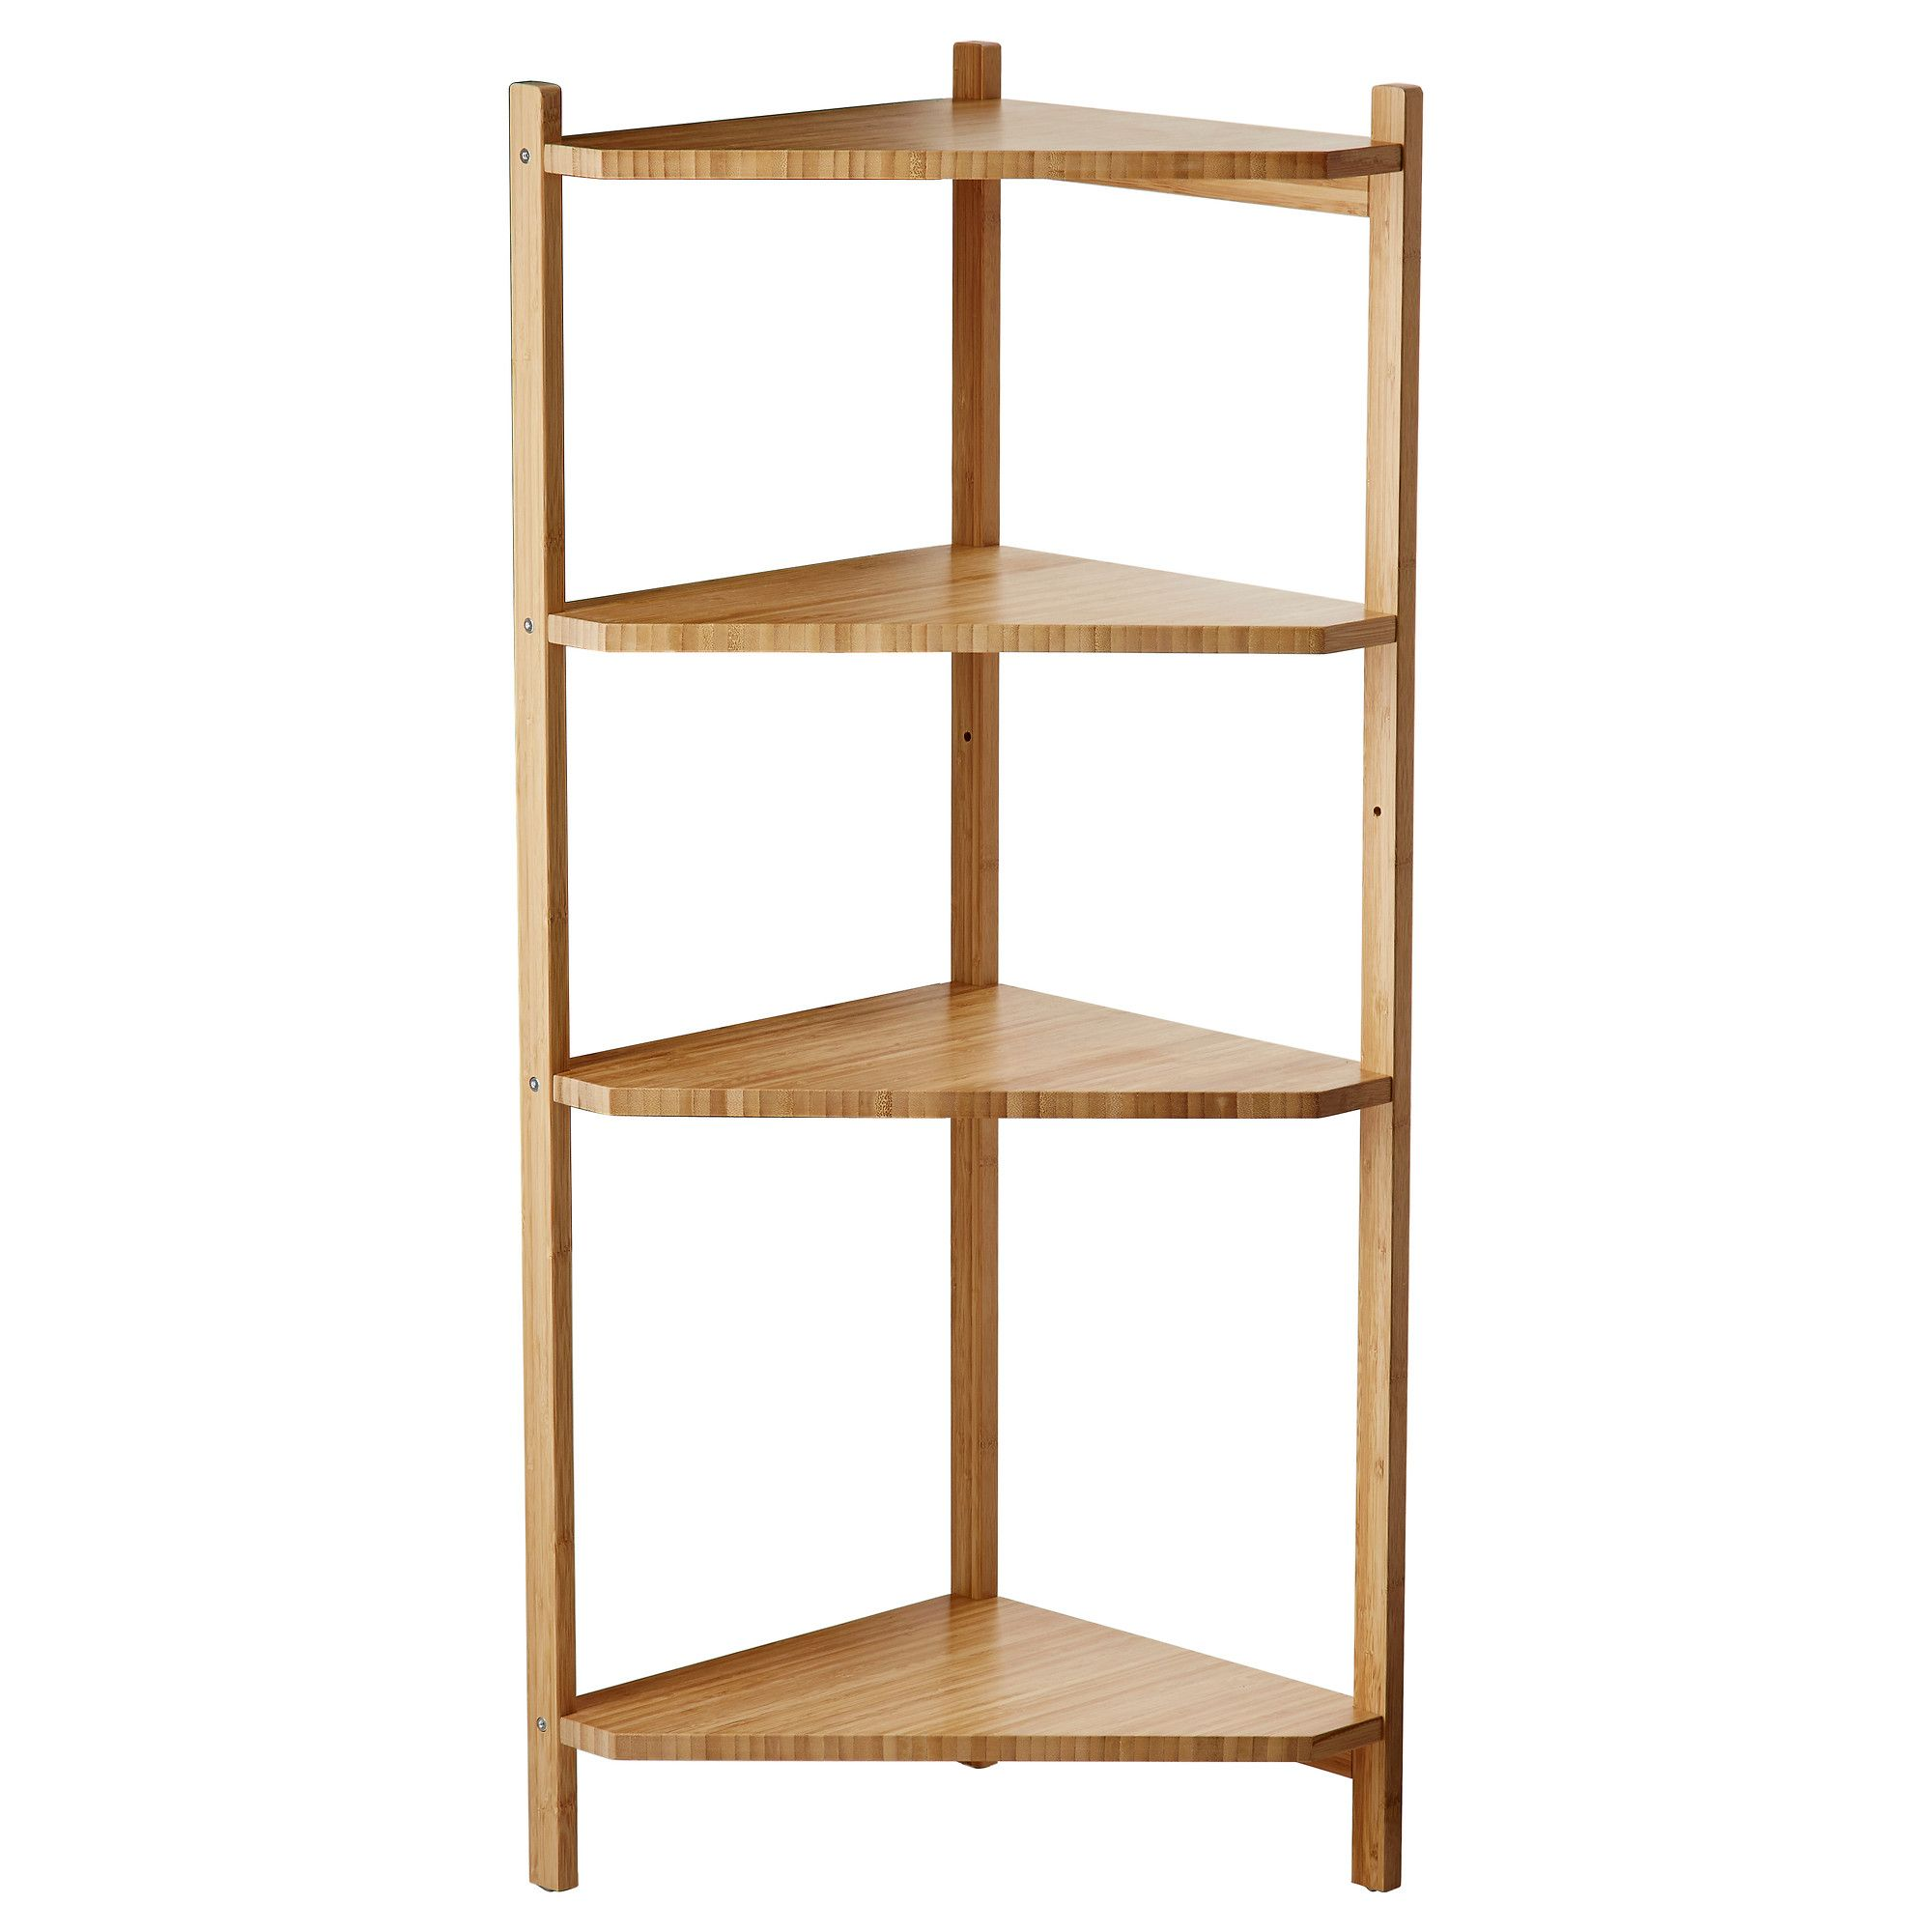 RÅGRUND Corner Shelf Unit